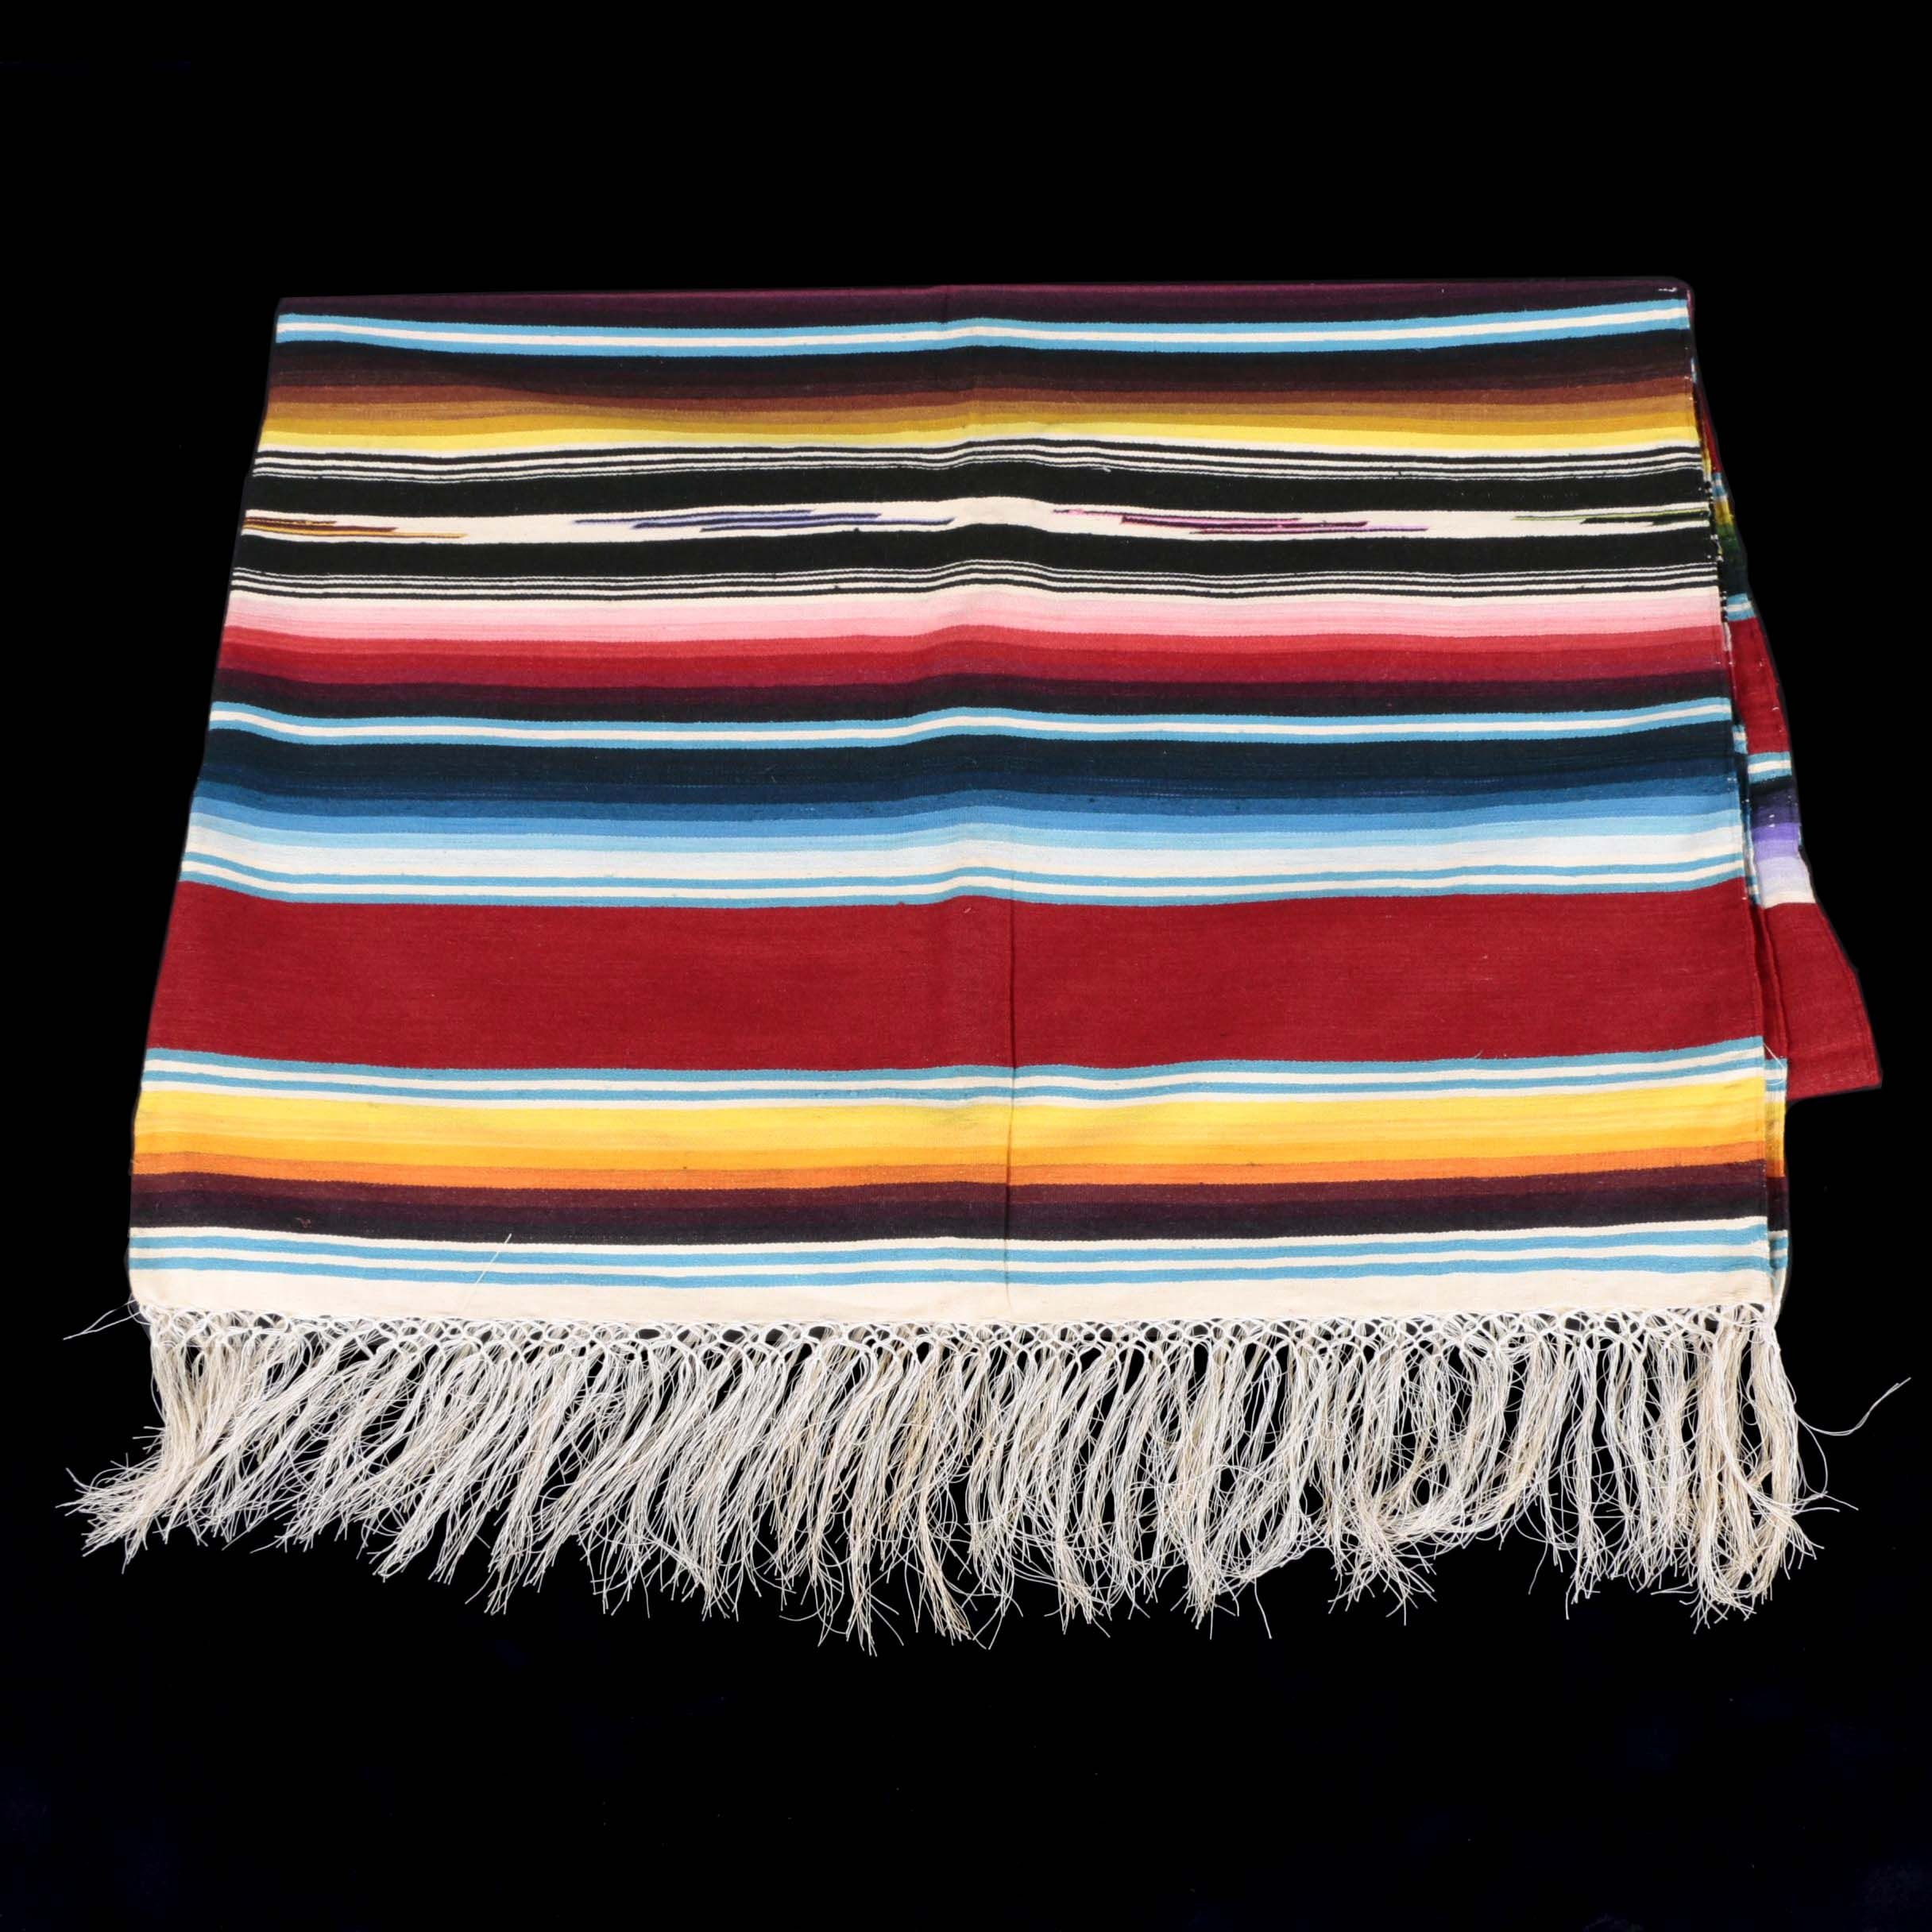 South American Styled Blanket